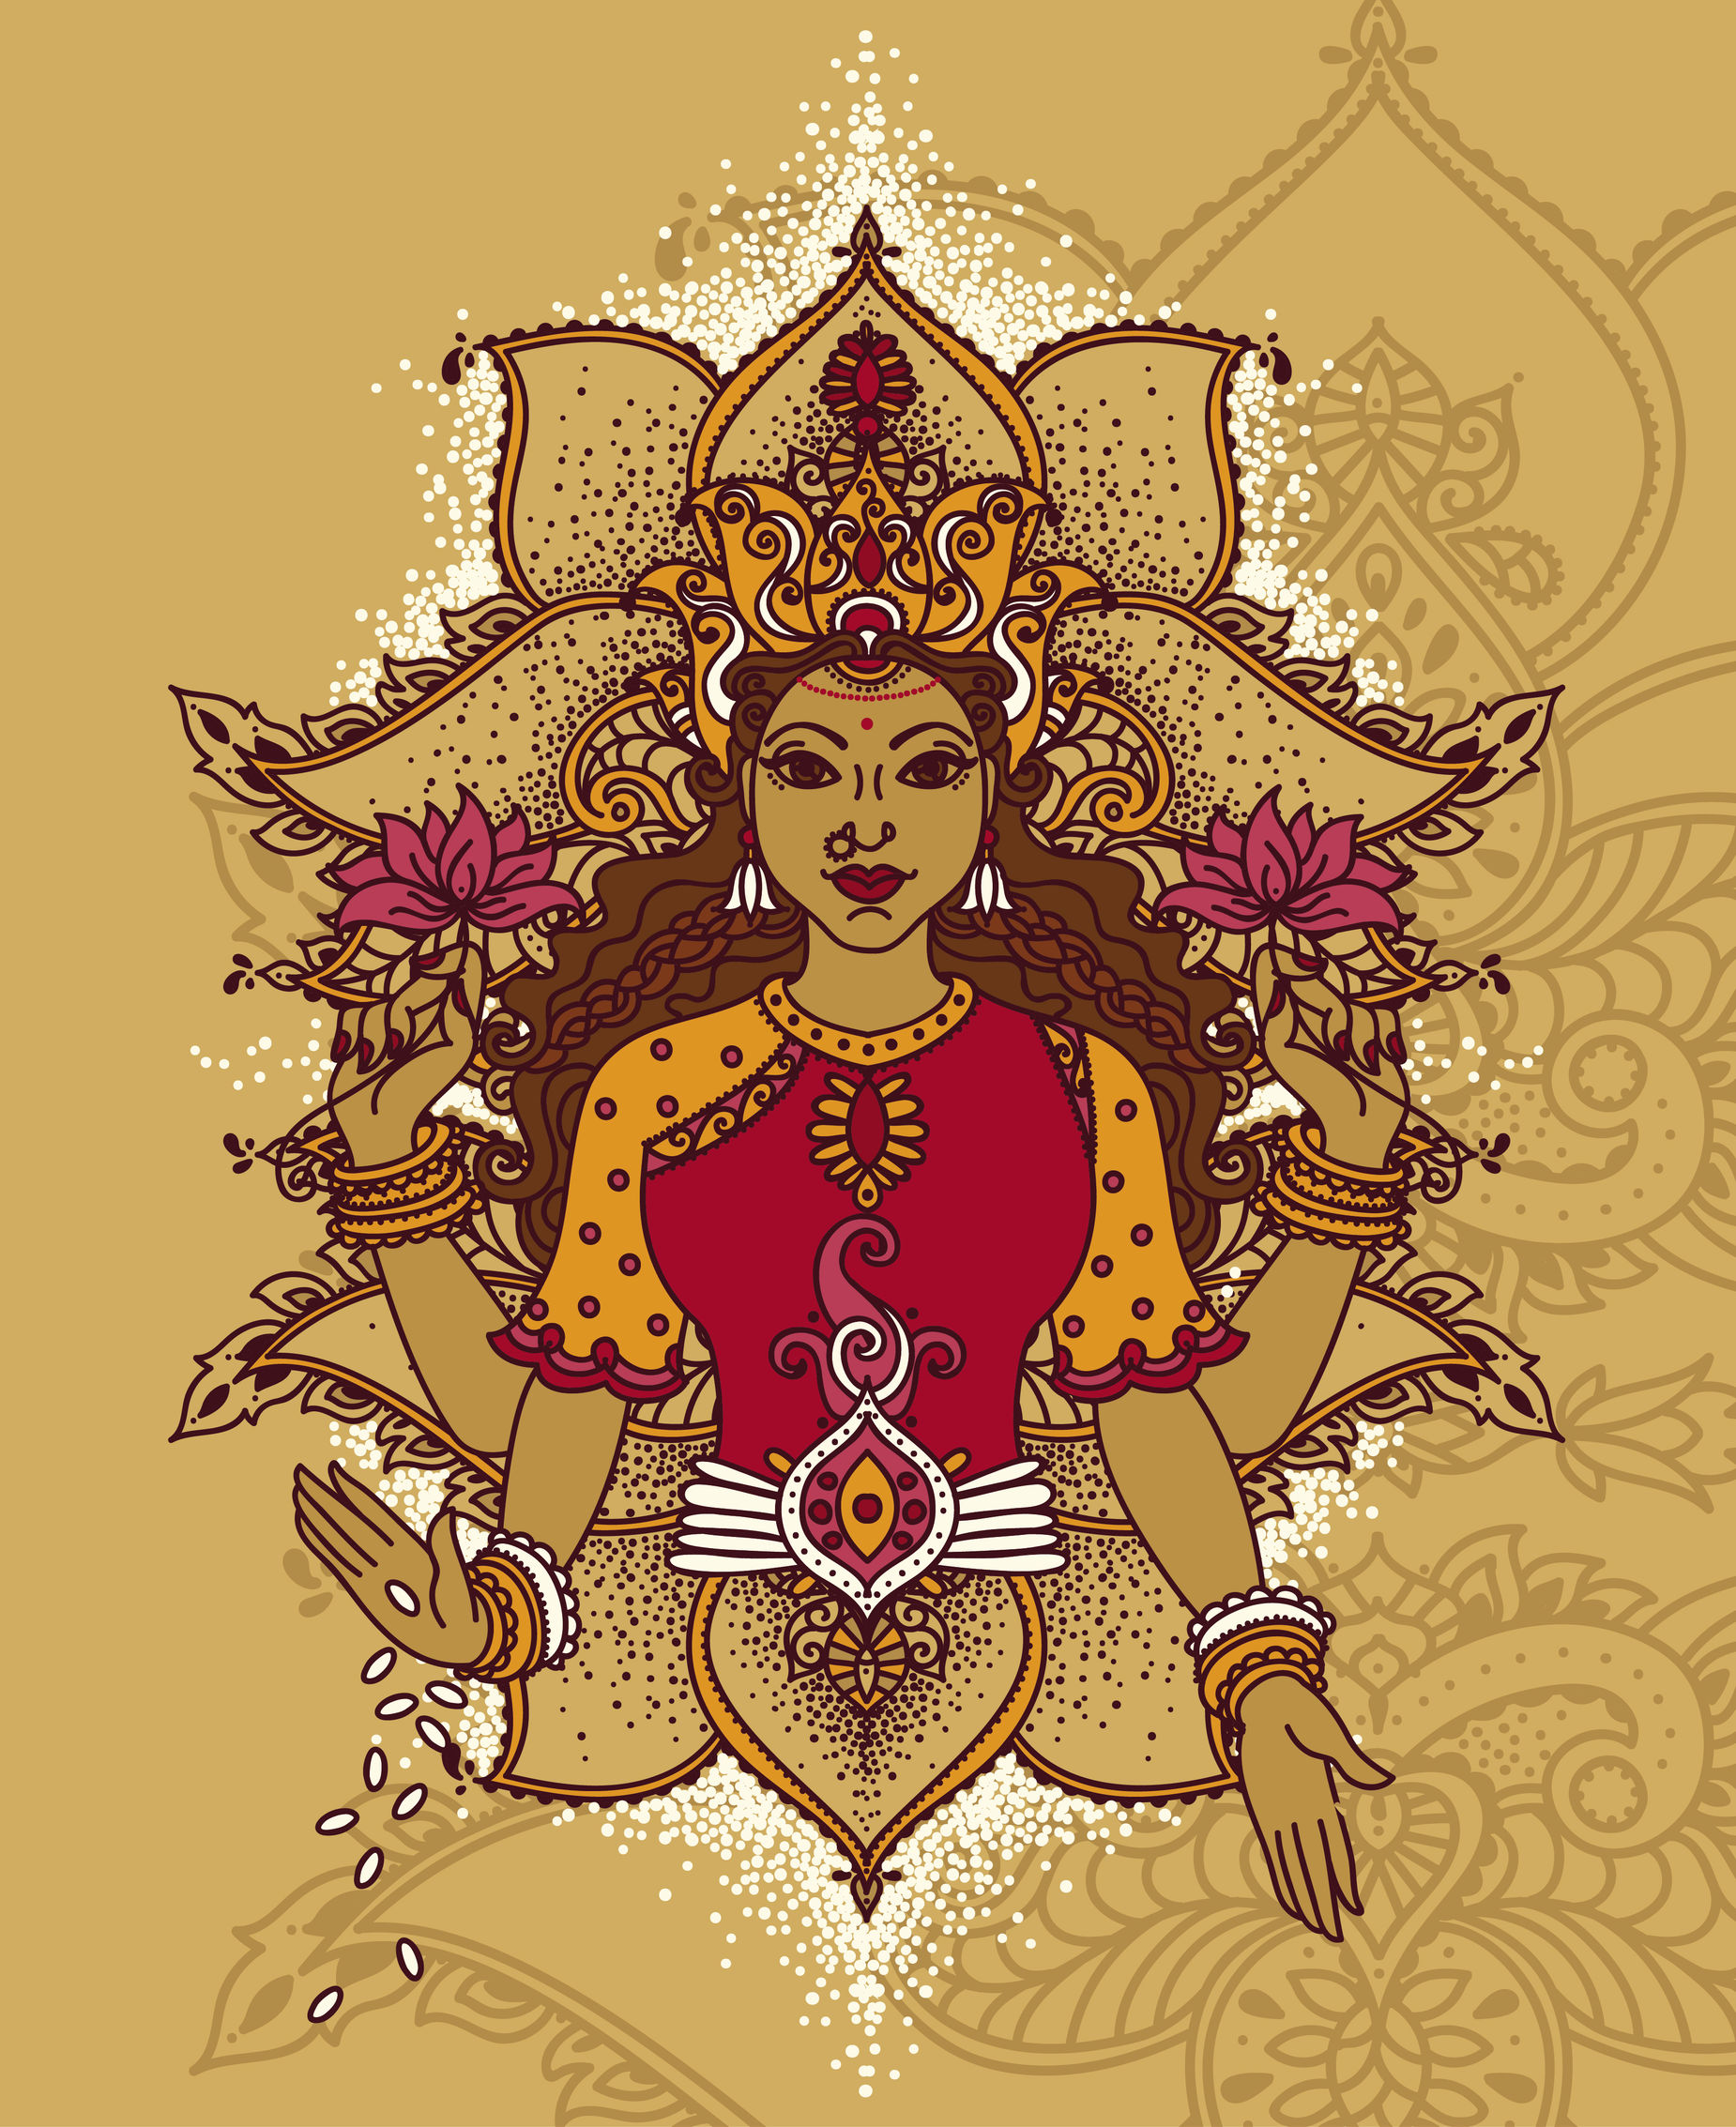 Indian goddess Lakshmi and royal ornament, can be used as a card for celebration Diwali festival